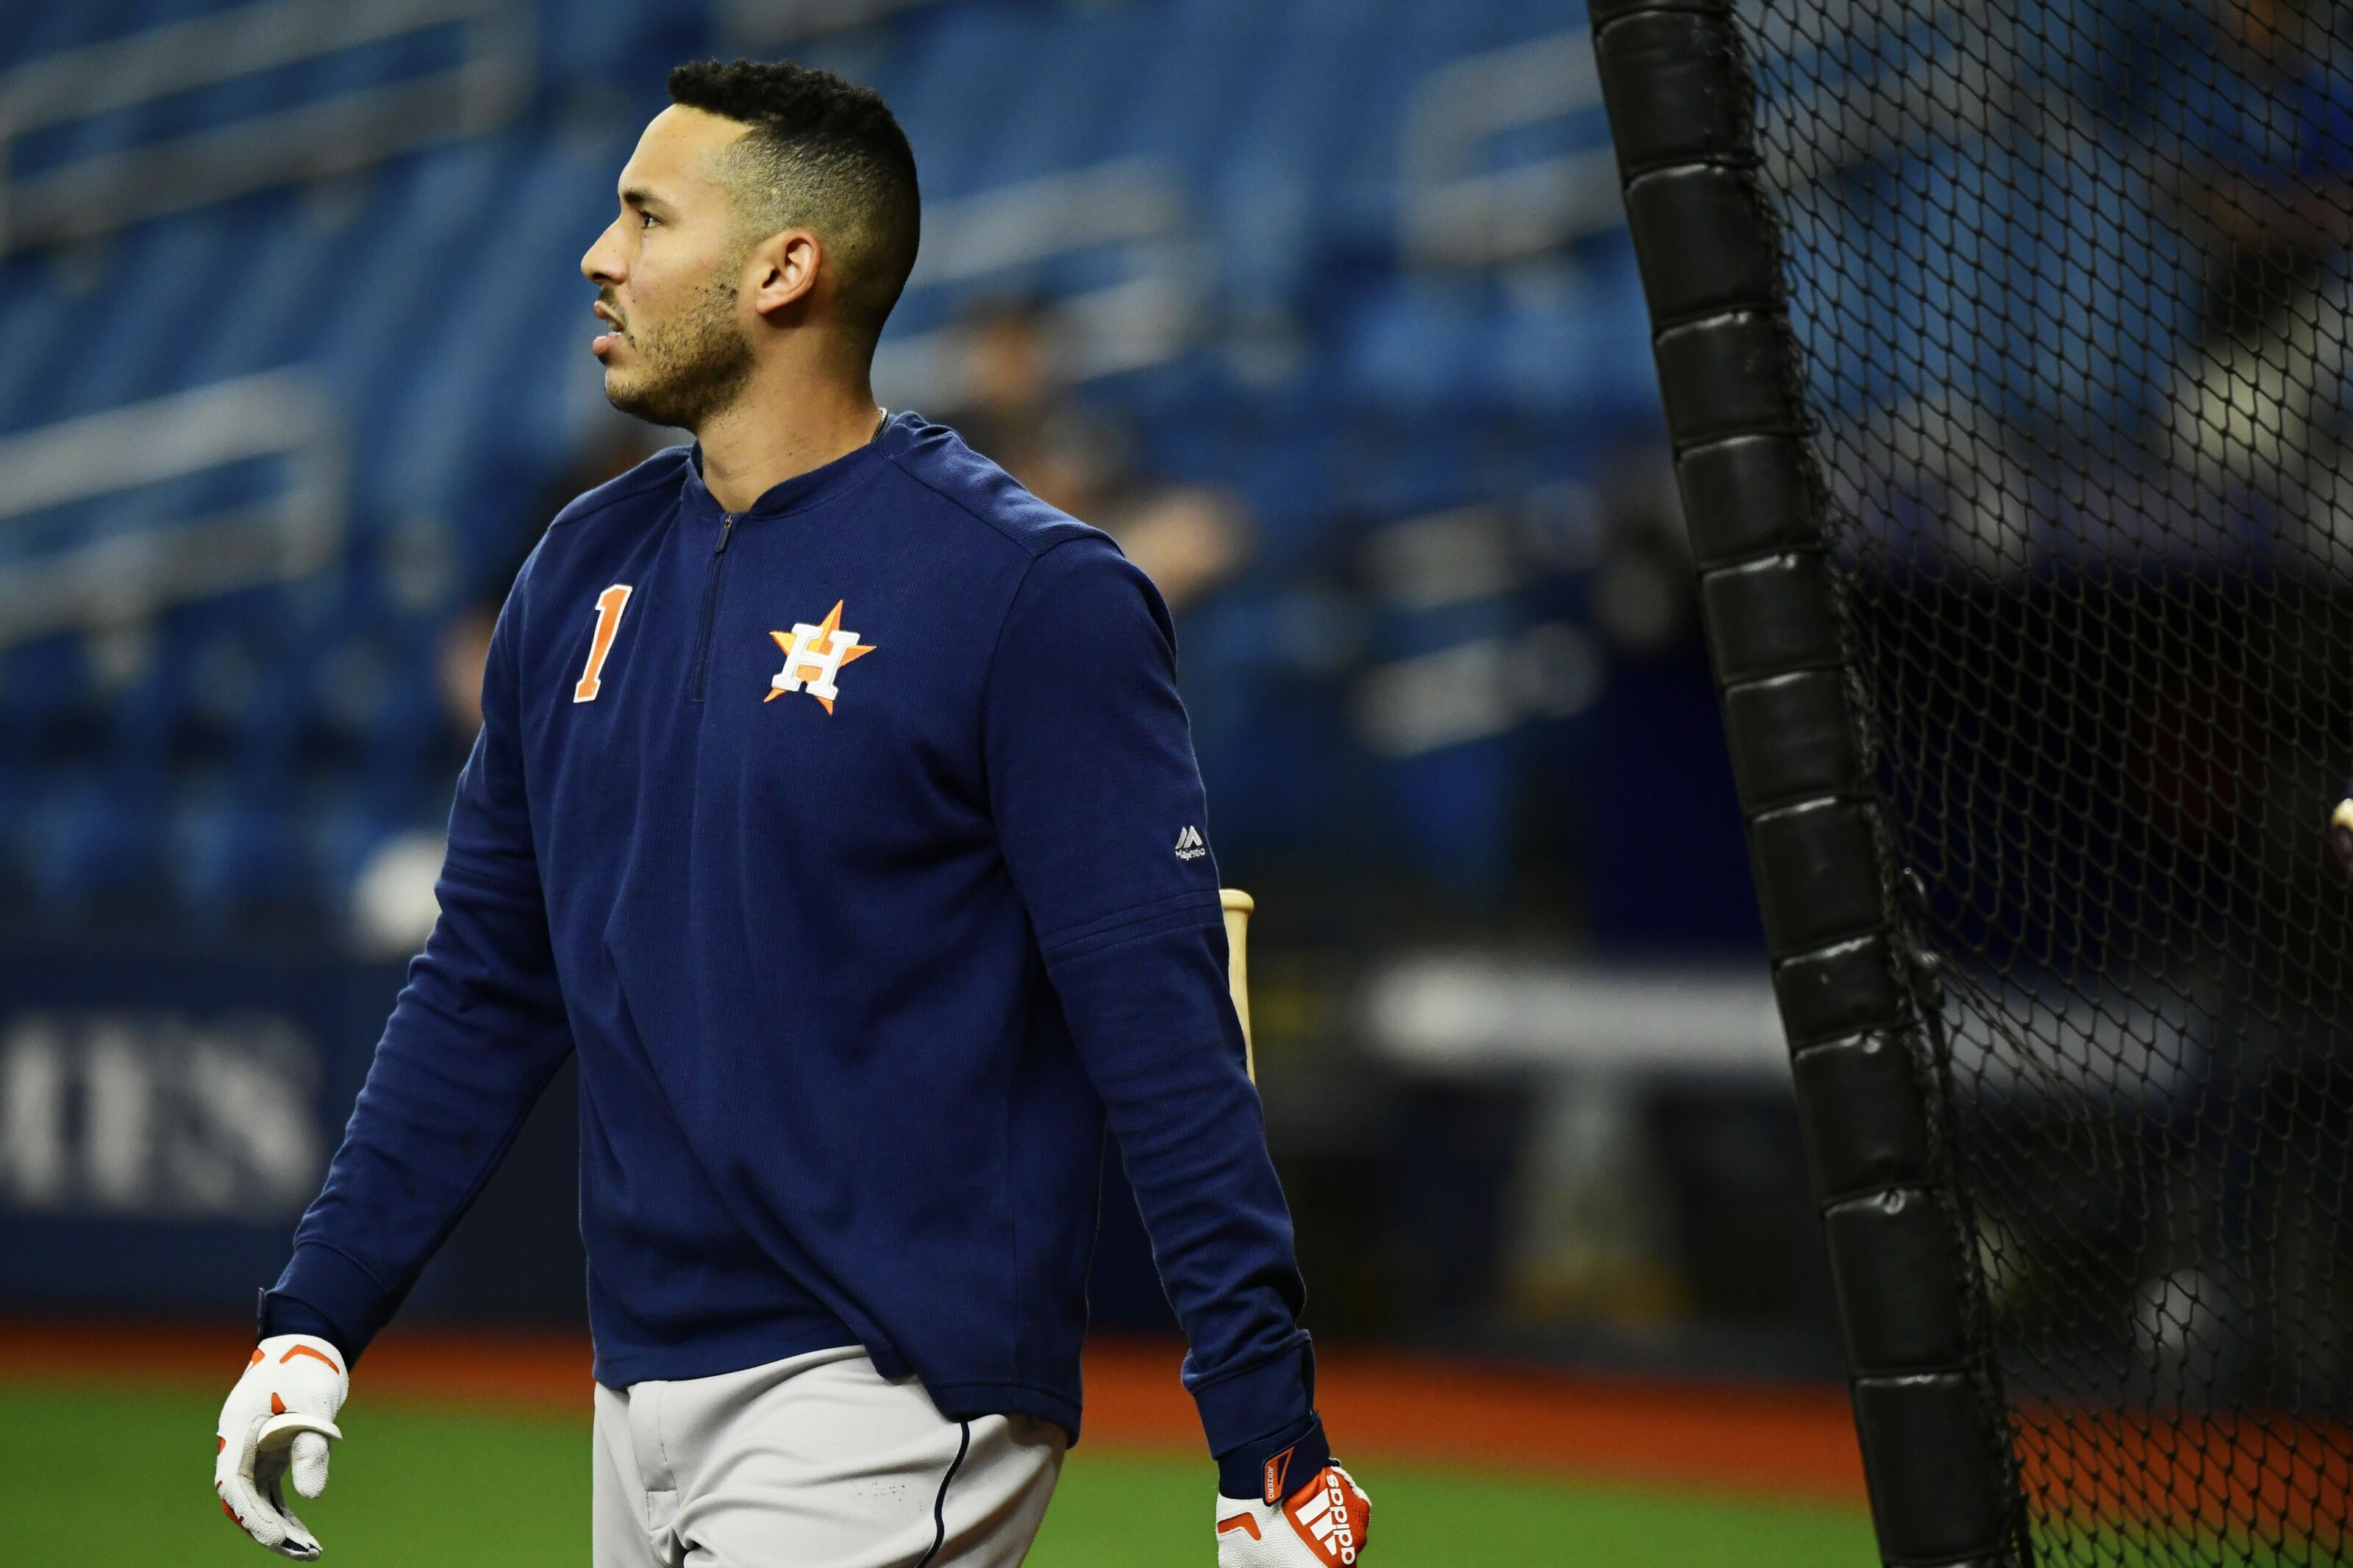 Houston Astros: Carlos Correa's return may be later than we think